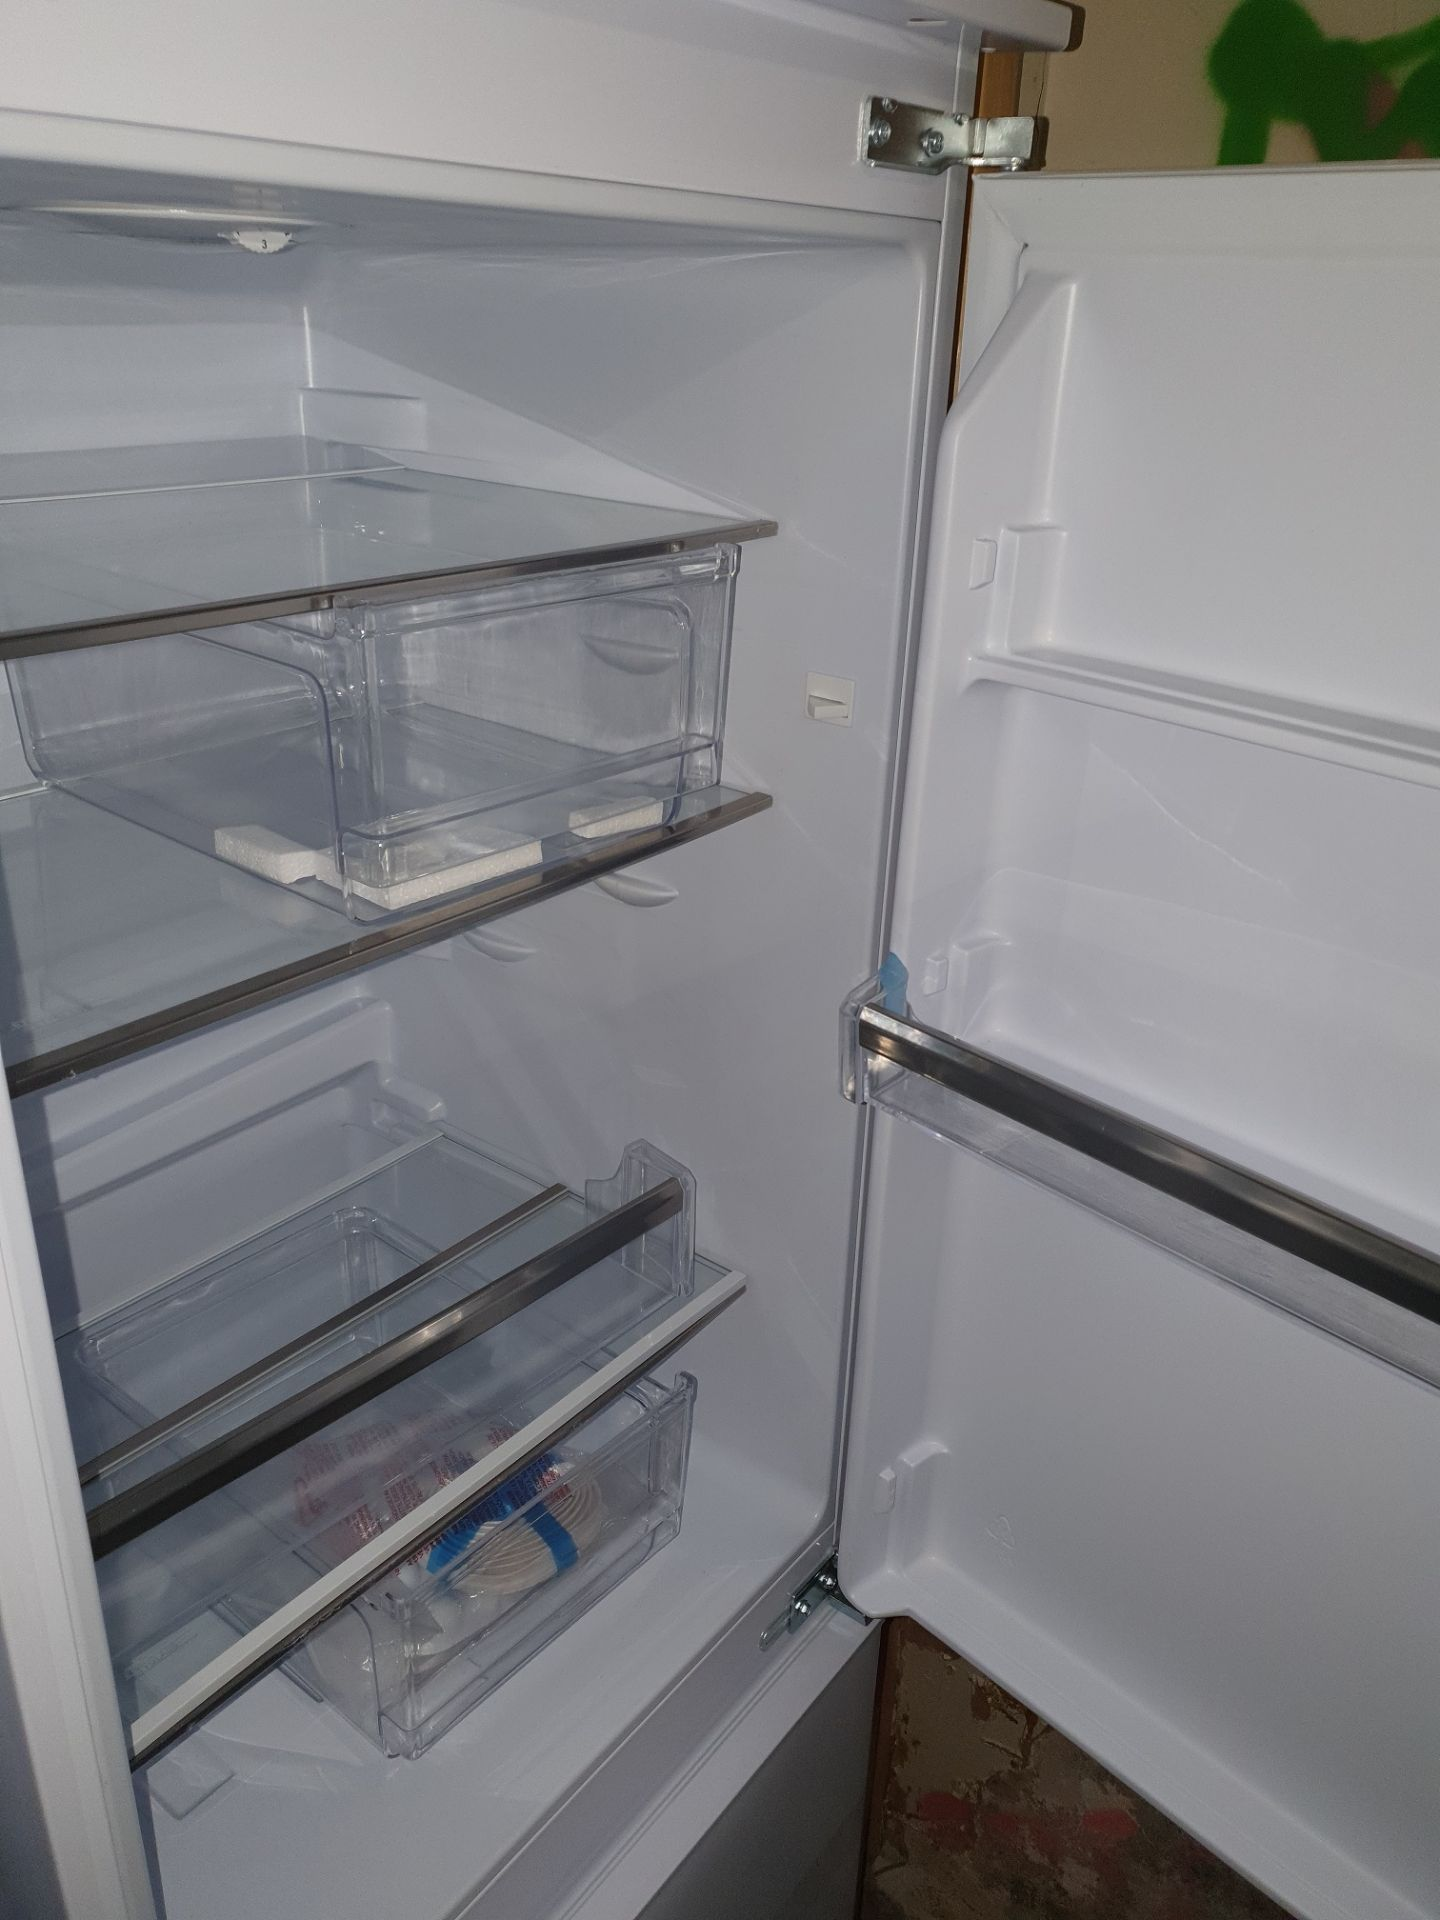 NEW/GRADED AND PACKAGED Prima PRRF208 Tall 177.6cm Integrated Larder Fridge (Slight external - Image 13 of 14